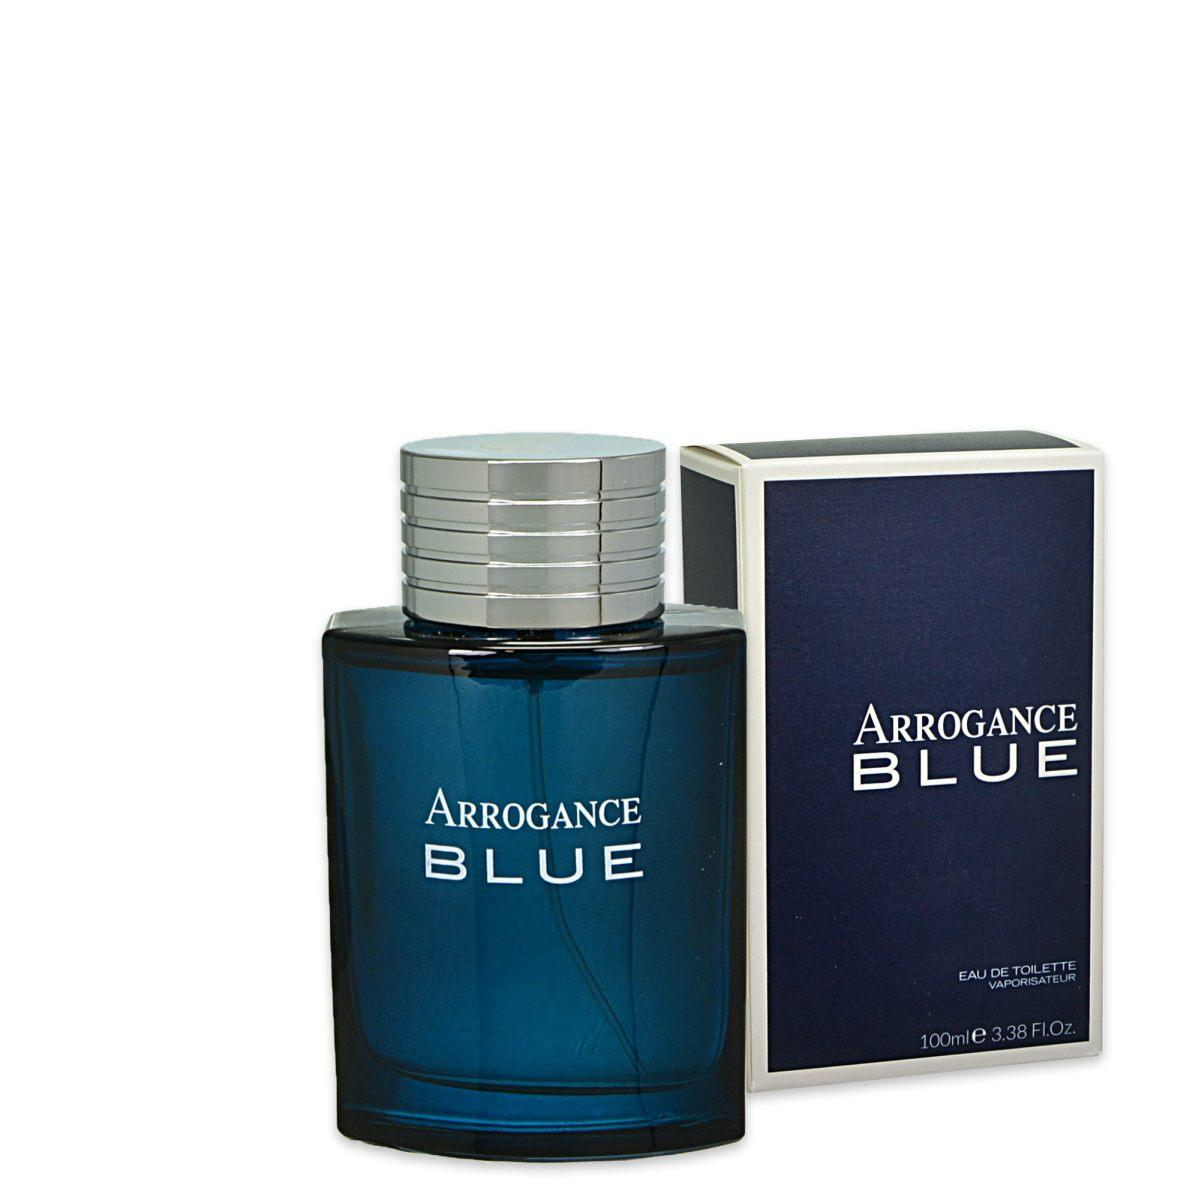 ARROGANCE BLUE EDT EAU DE TOILETTE SPRAY 100ml PROFUMO UOMO